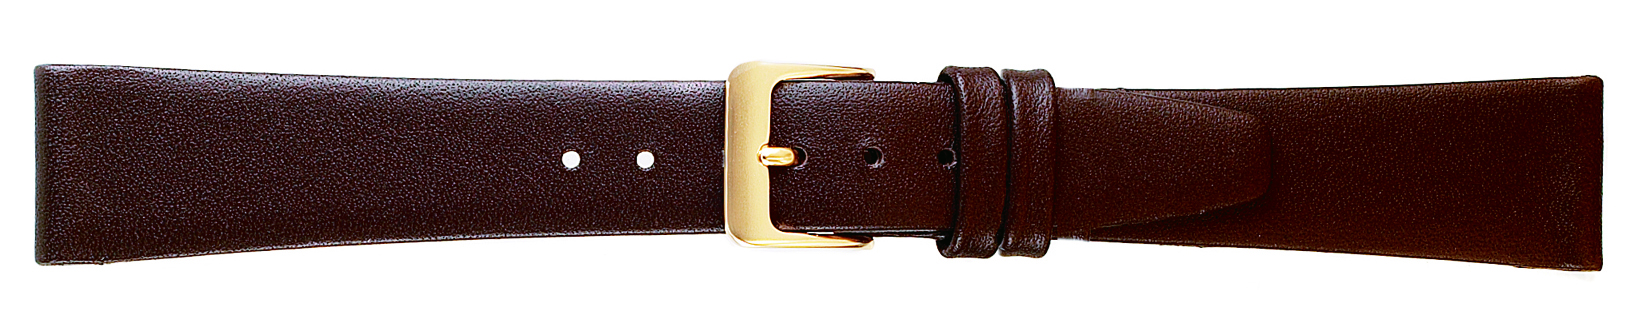 20MM Leather Band Brown Smooth Calf-0